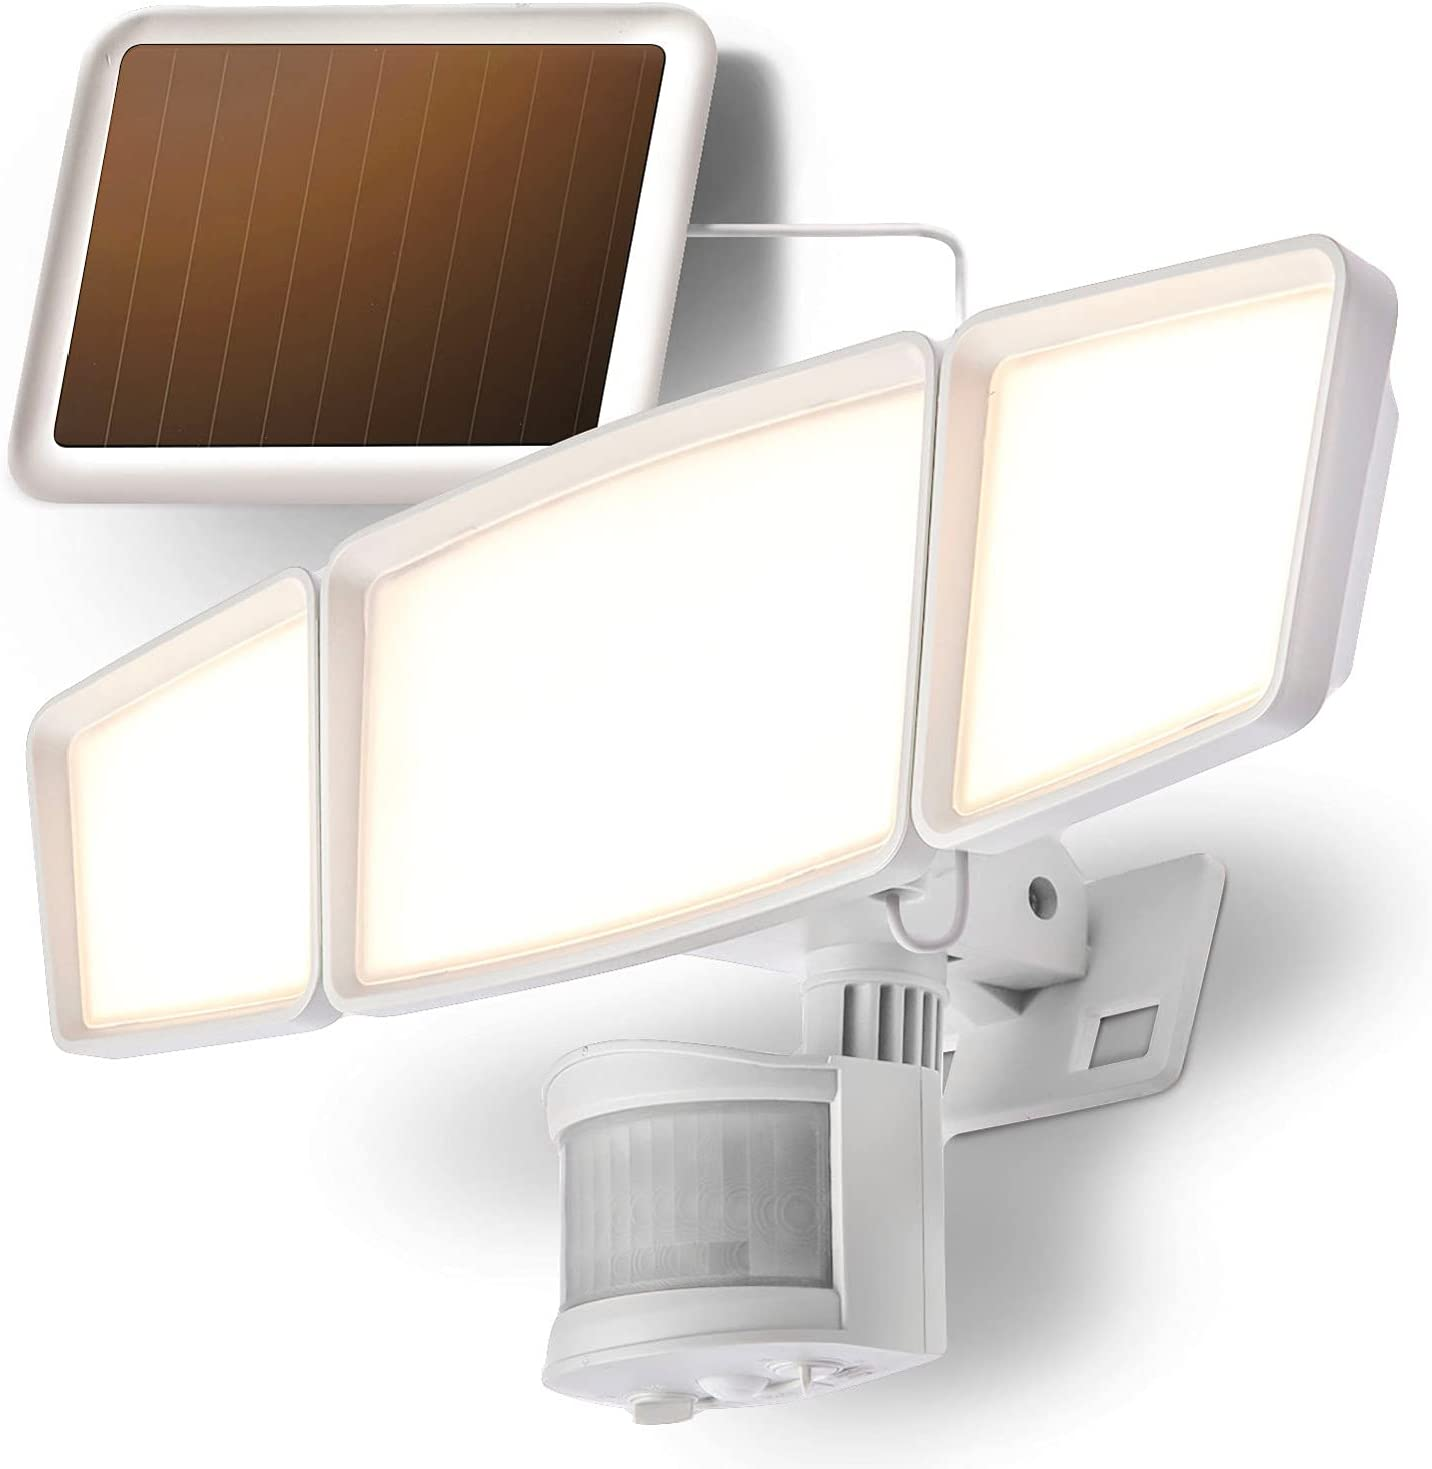 Home Zone Security Solar Flood Lights - Outdoor Motion Sensor LED Flood Light Warm 3500K Color Temperature with No Wiring Required, White